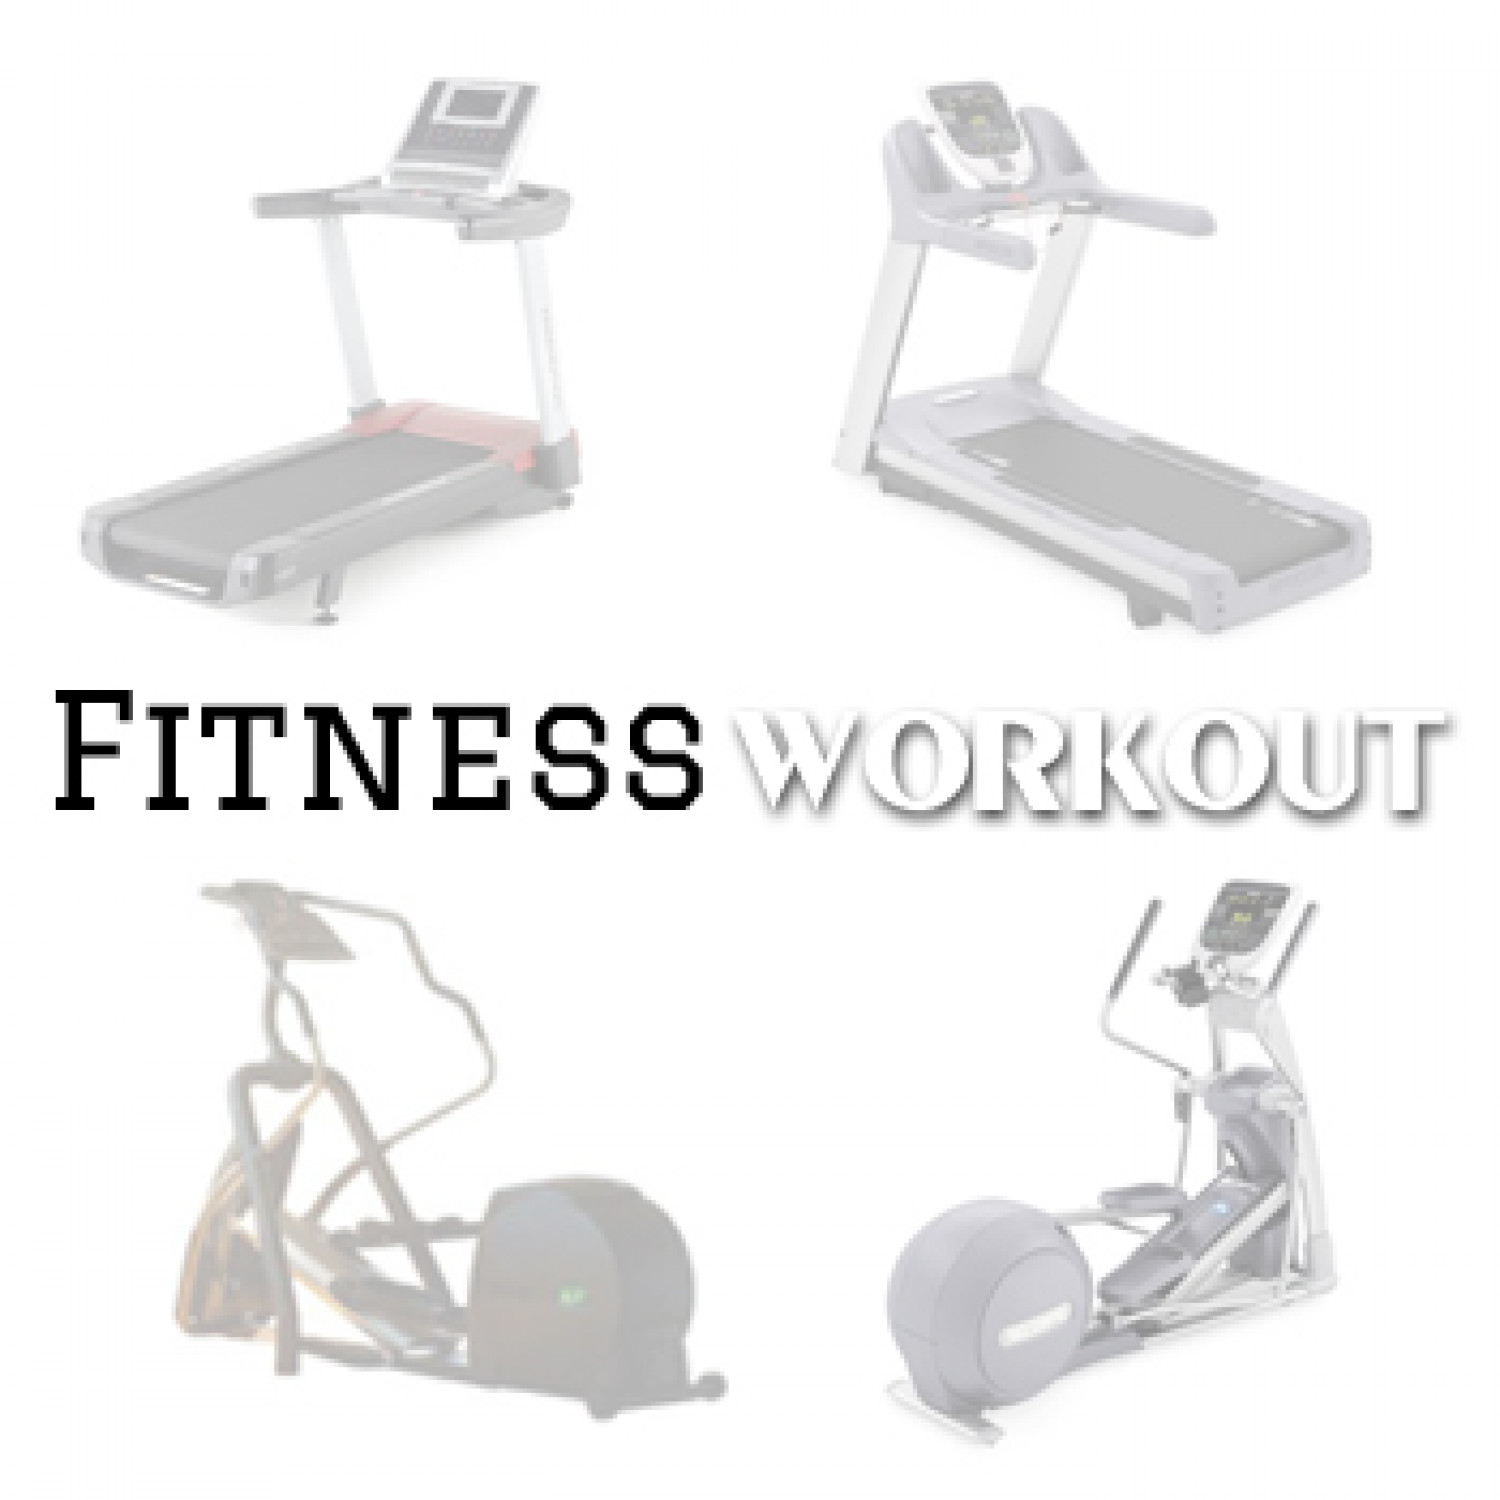 Cardio Exercise Plan Gym Acai Weight Loss Pills Do They Work Foods For Losing And Gaining Muscle Easy Way